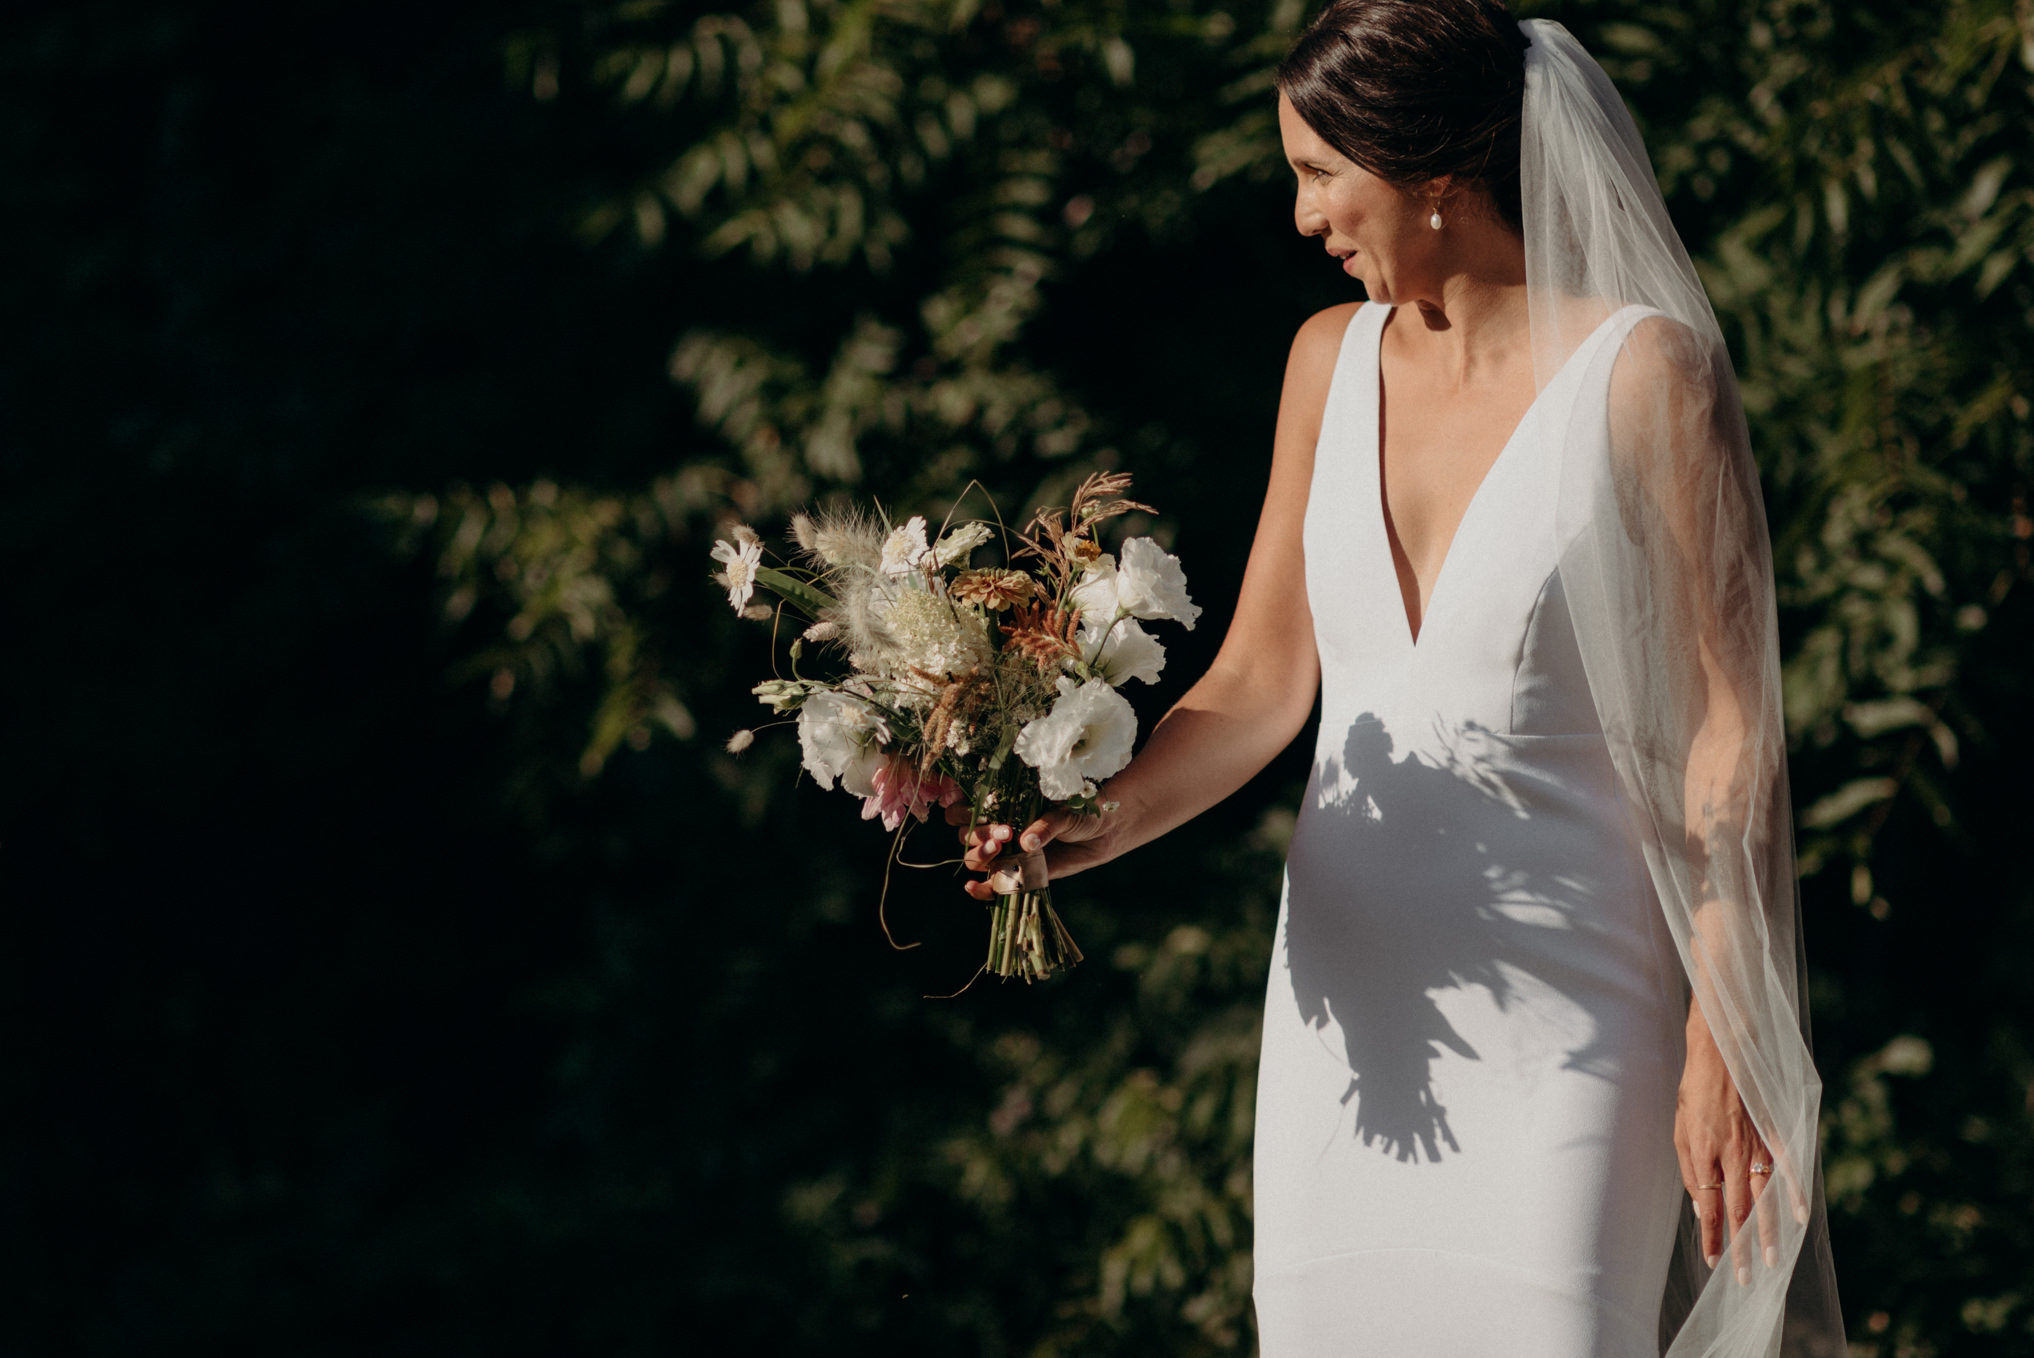 bride holding bouquet in sun surrounded by trees